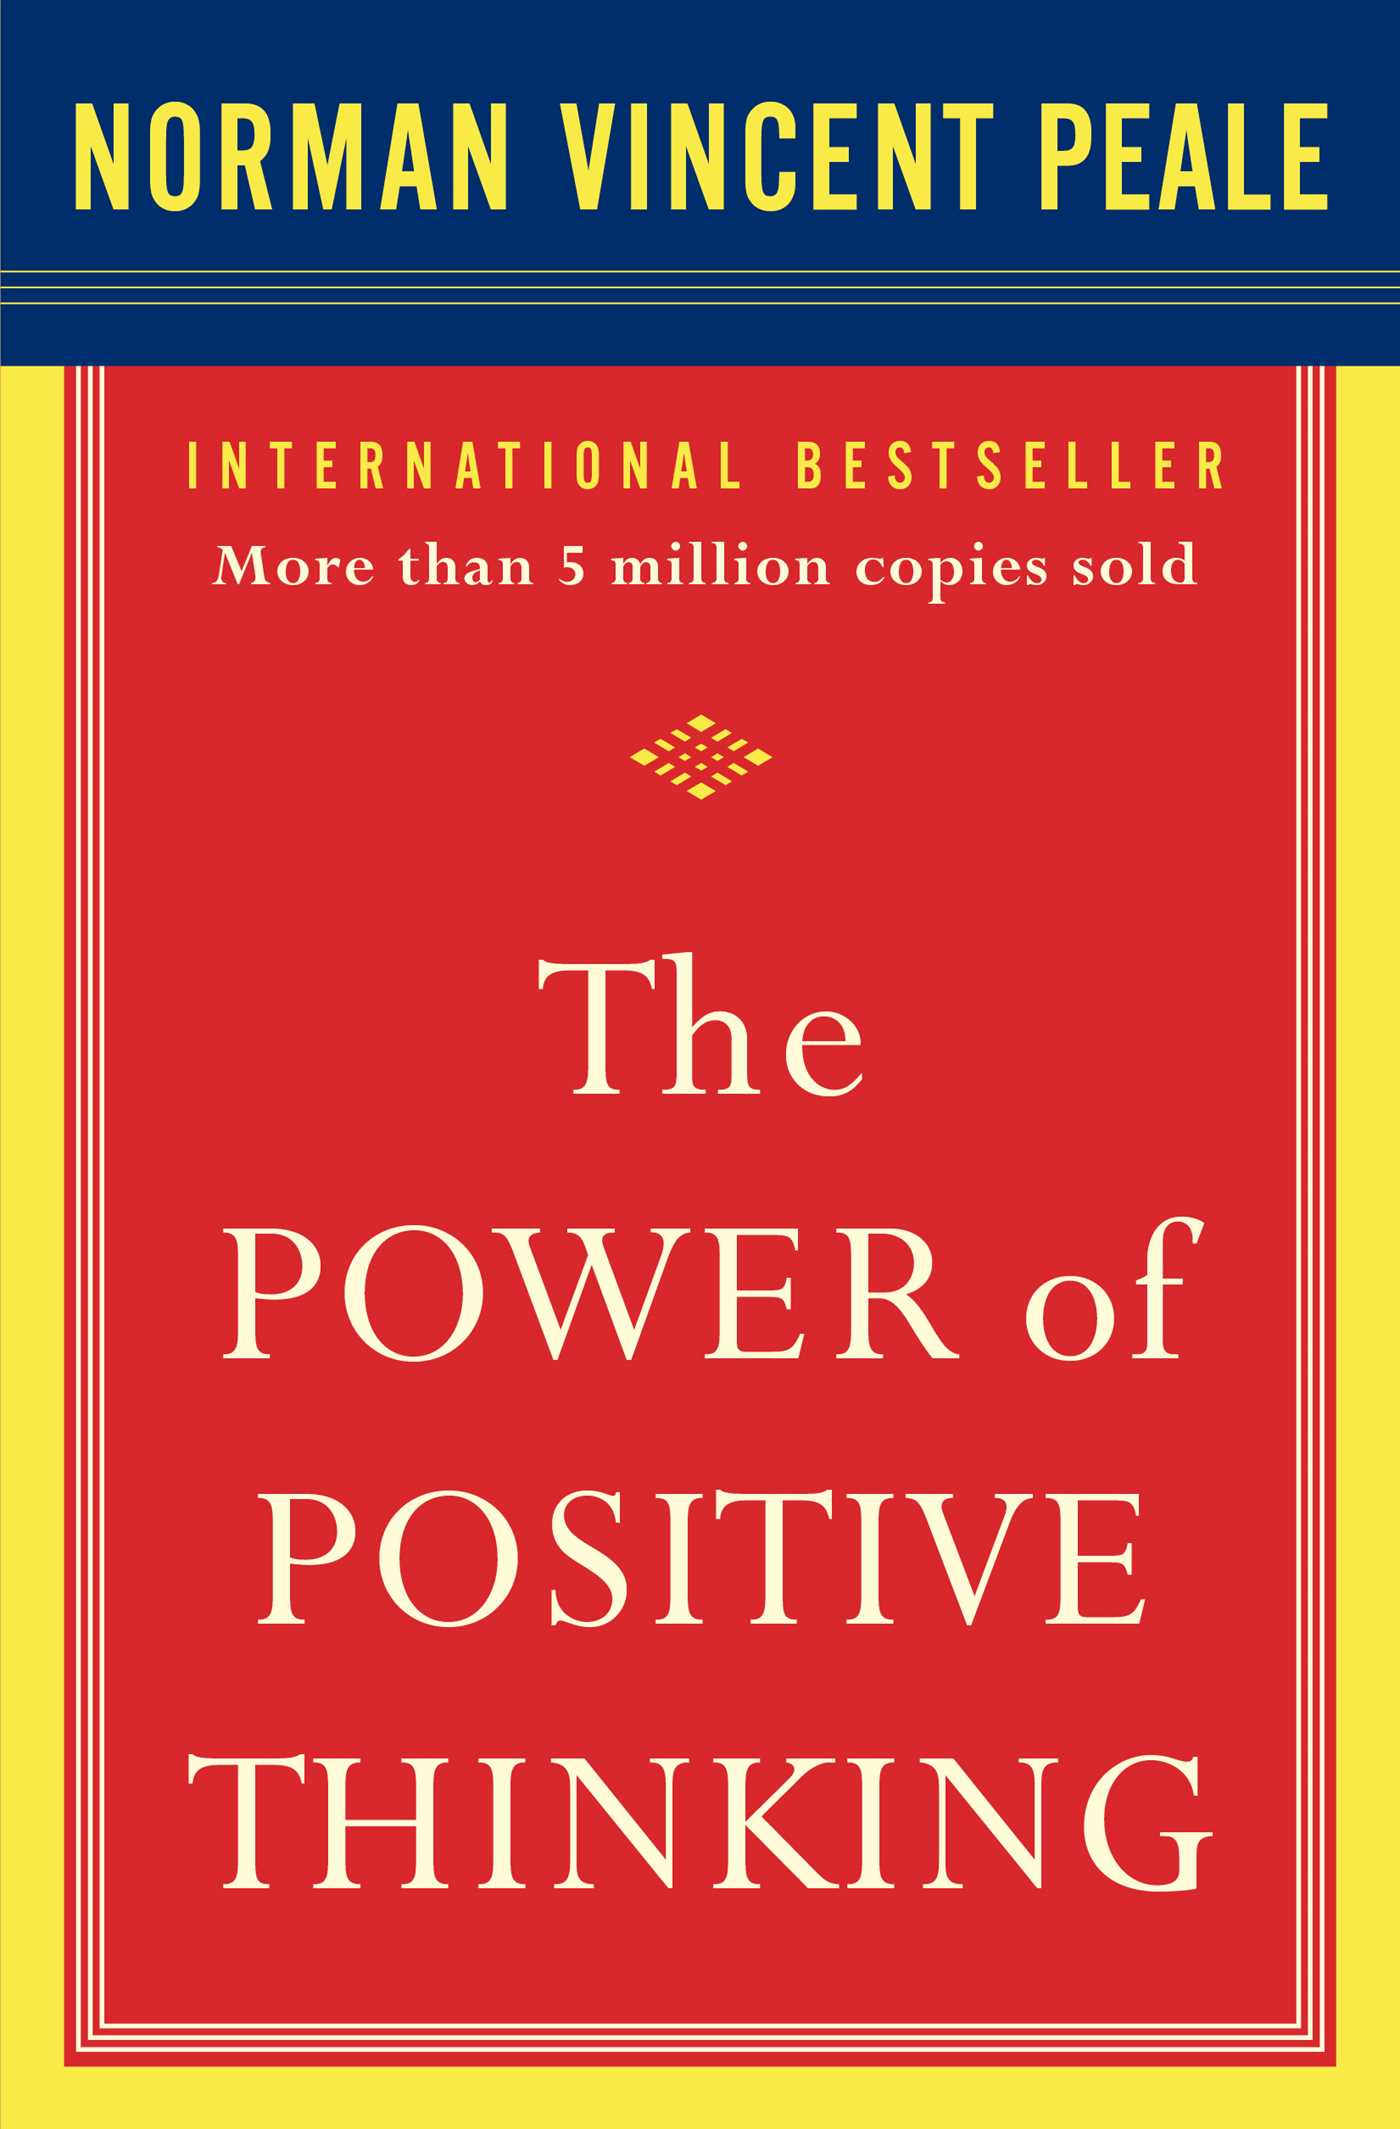 essay on power power of positive thinking essay the power of  power of positive thinking essay the power of positive thinking the power of positive thinking essay